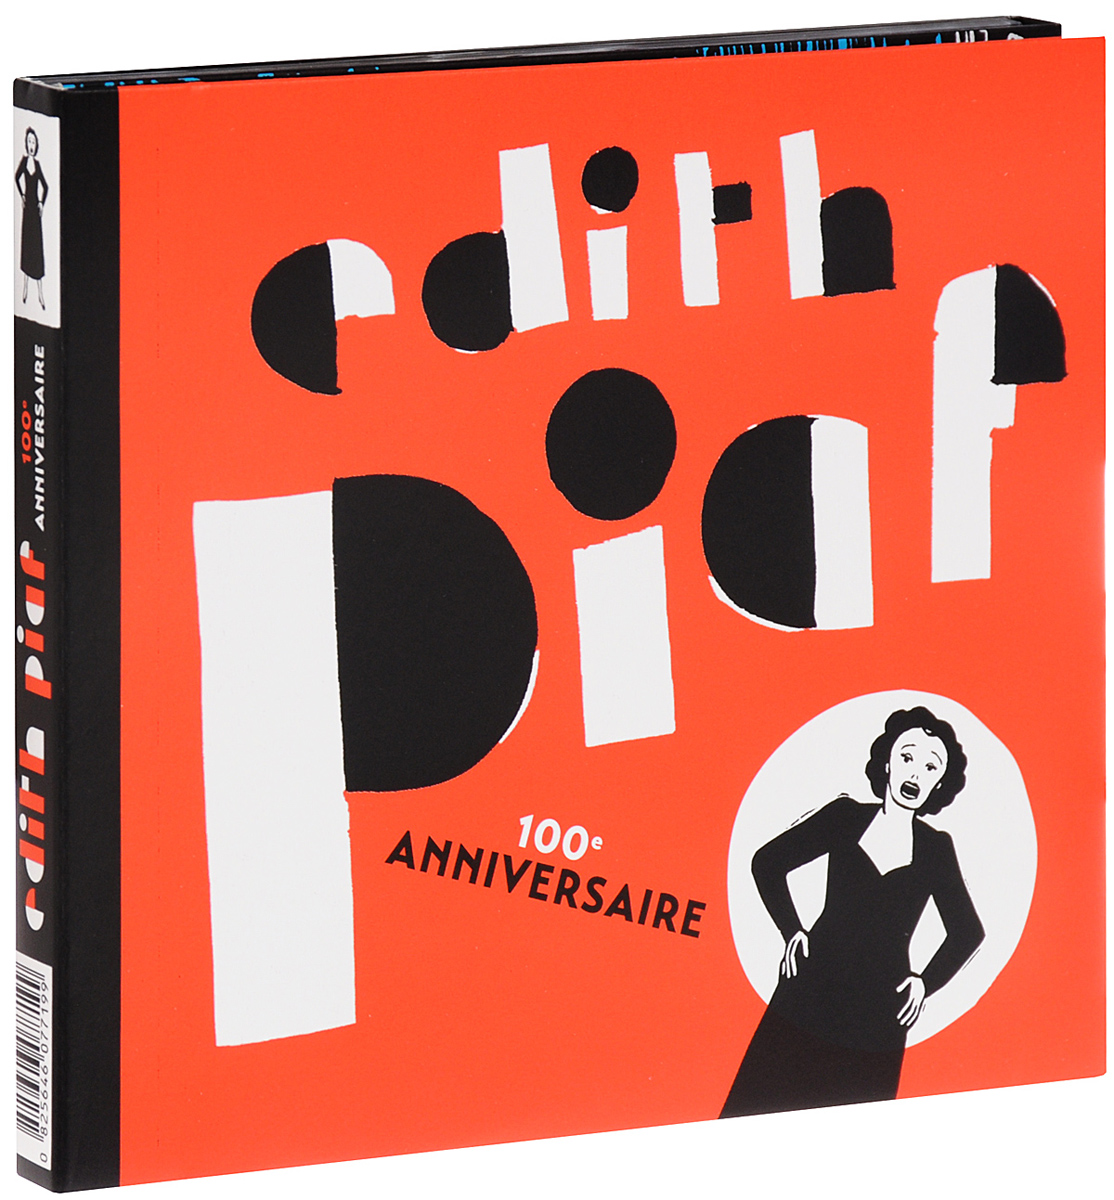 Эдит Пиаф Edith Piaf. 100e Anniversary (2 CD) эдит пиаф edith piaf fais moi valser 2 cd